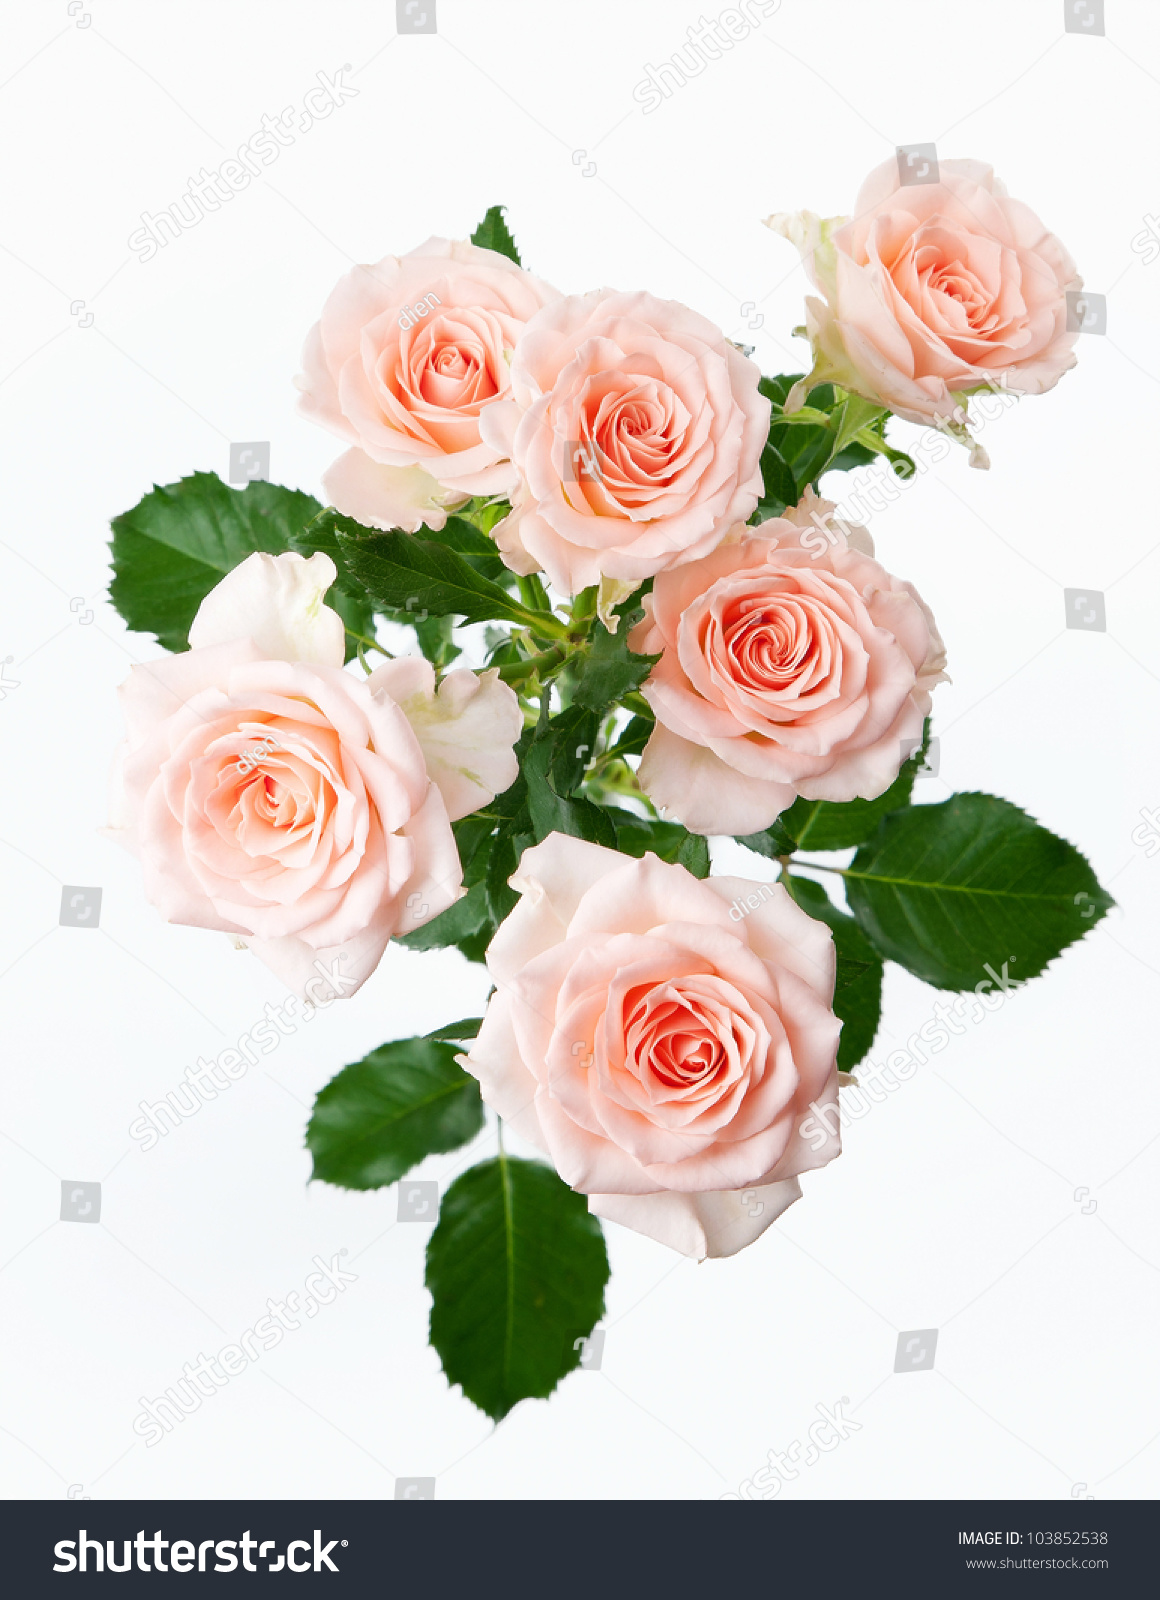 Bunch Rose Flowers On White Background Stock Photo ...